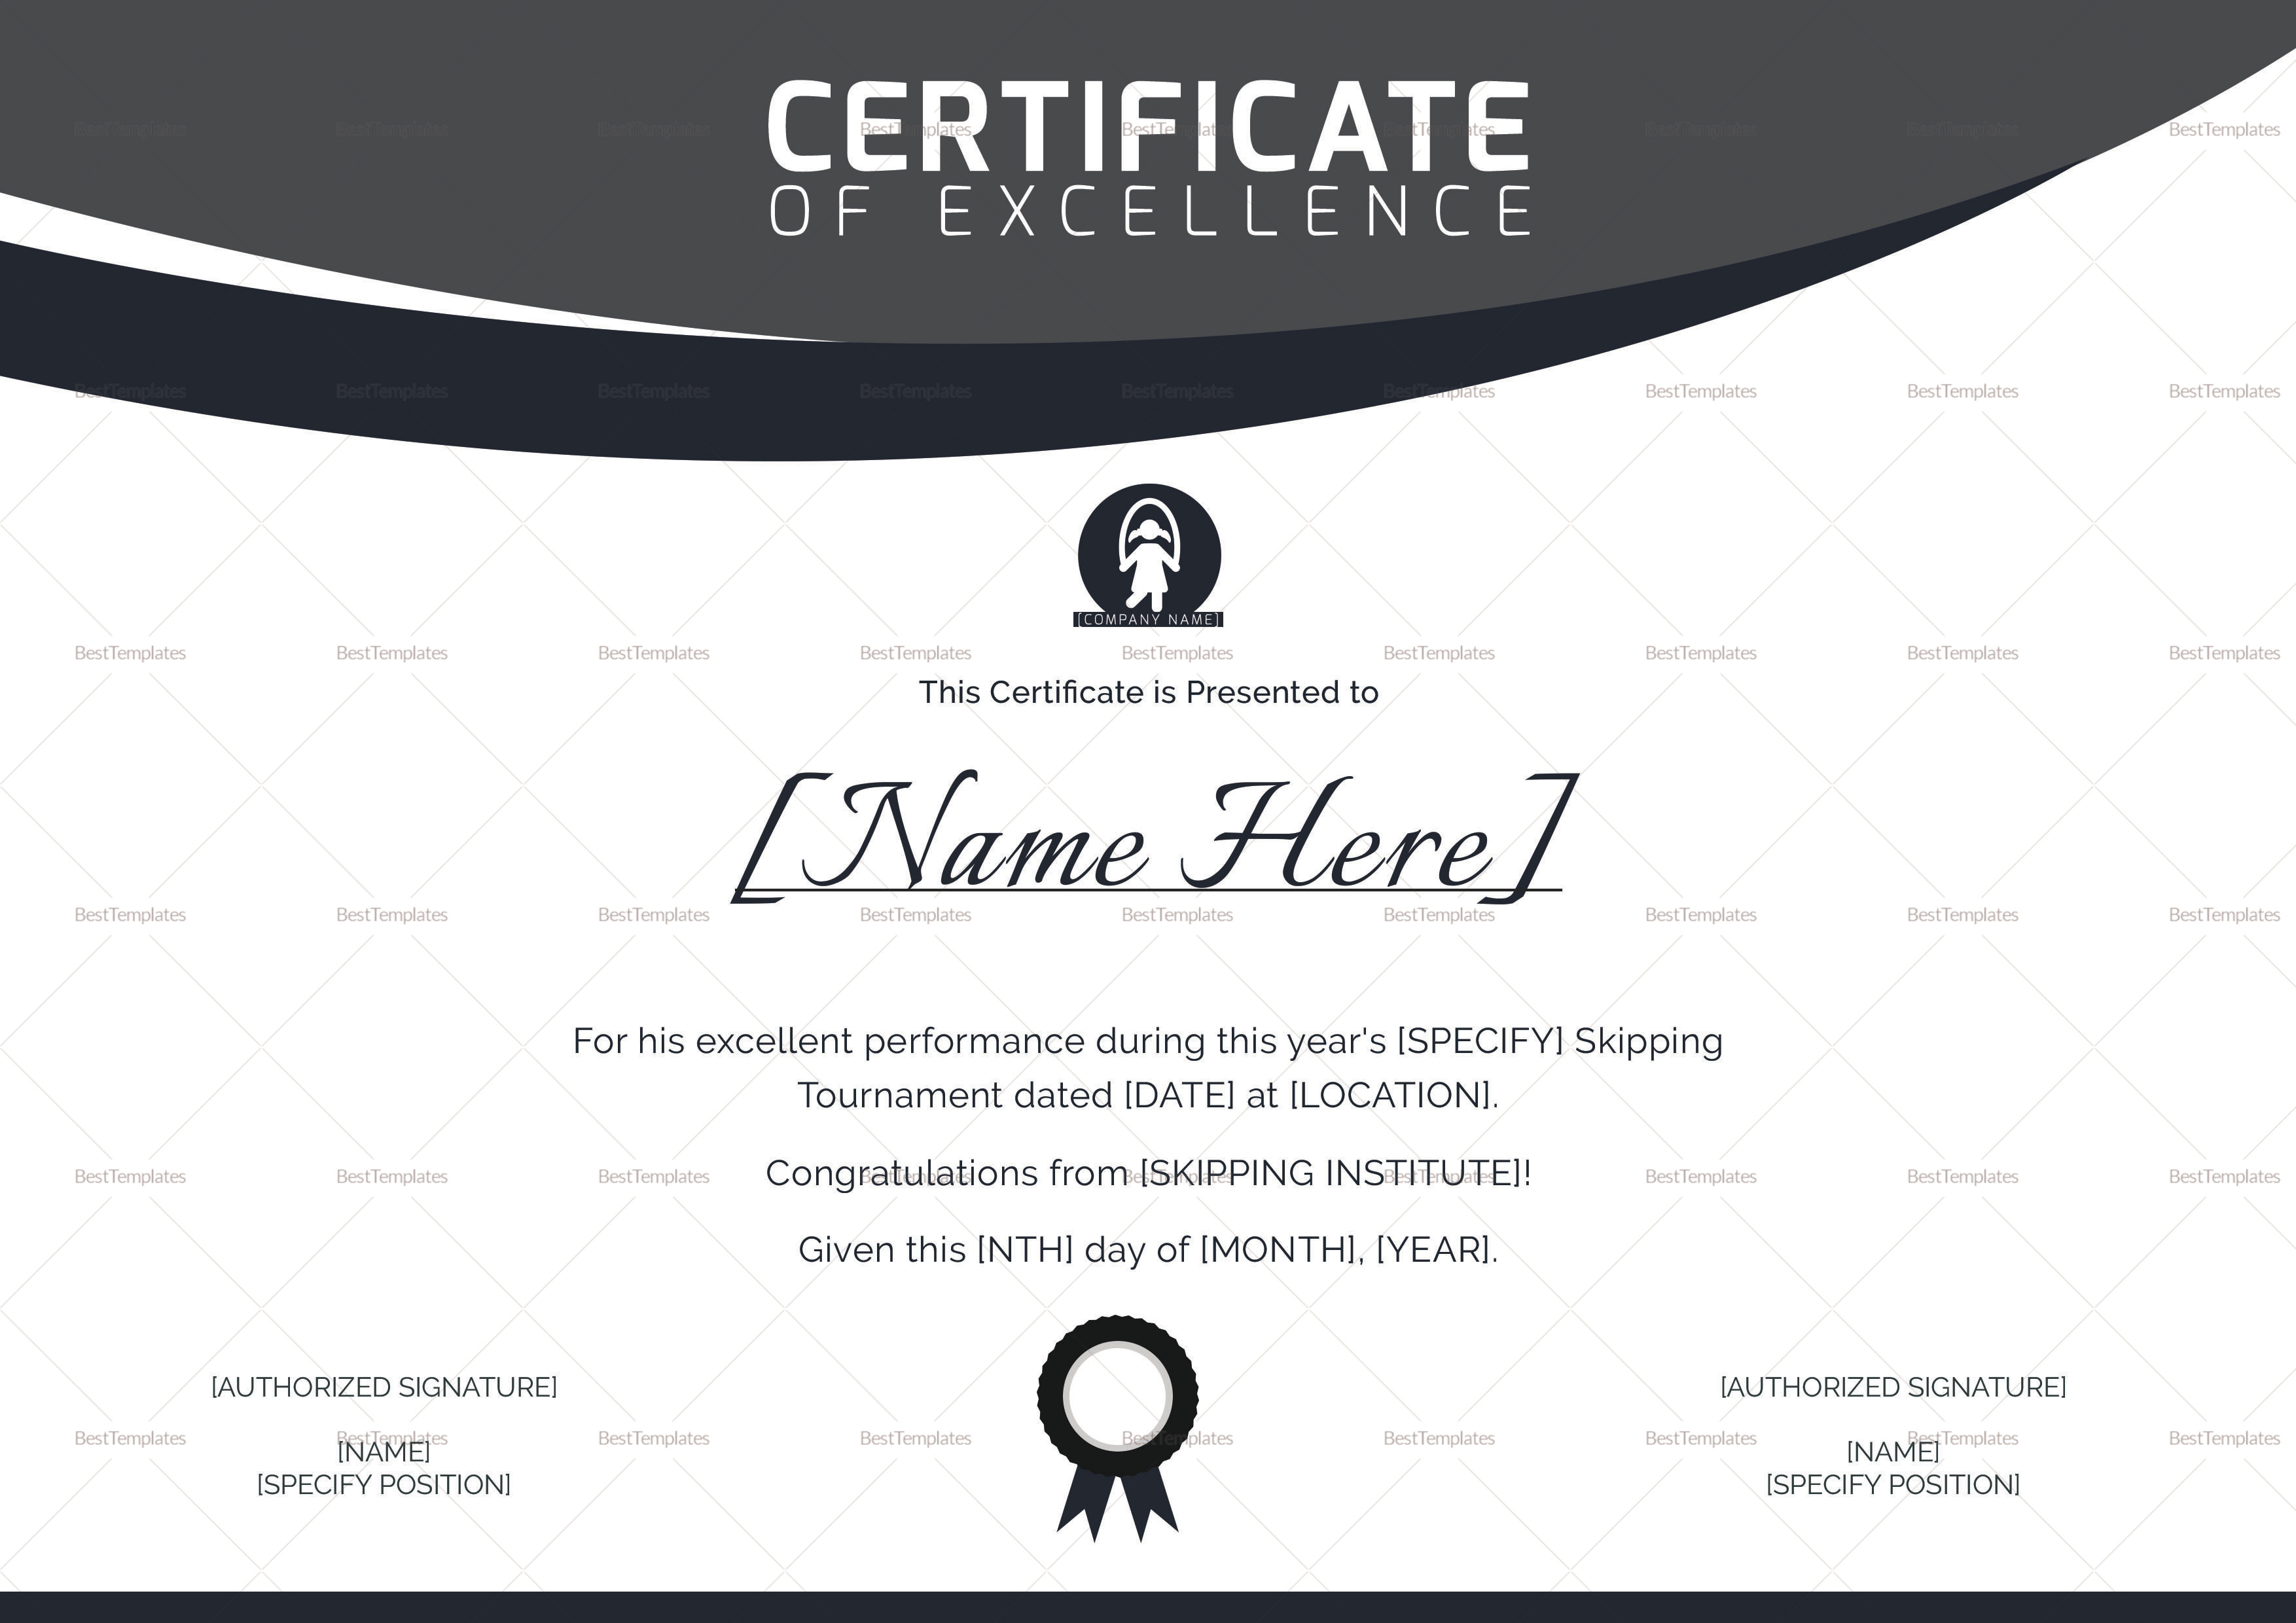 Skipping Excellence Certificate Design Template